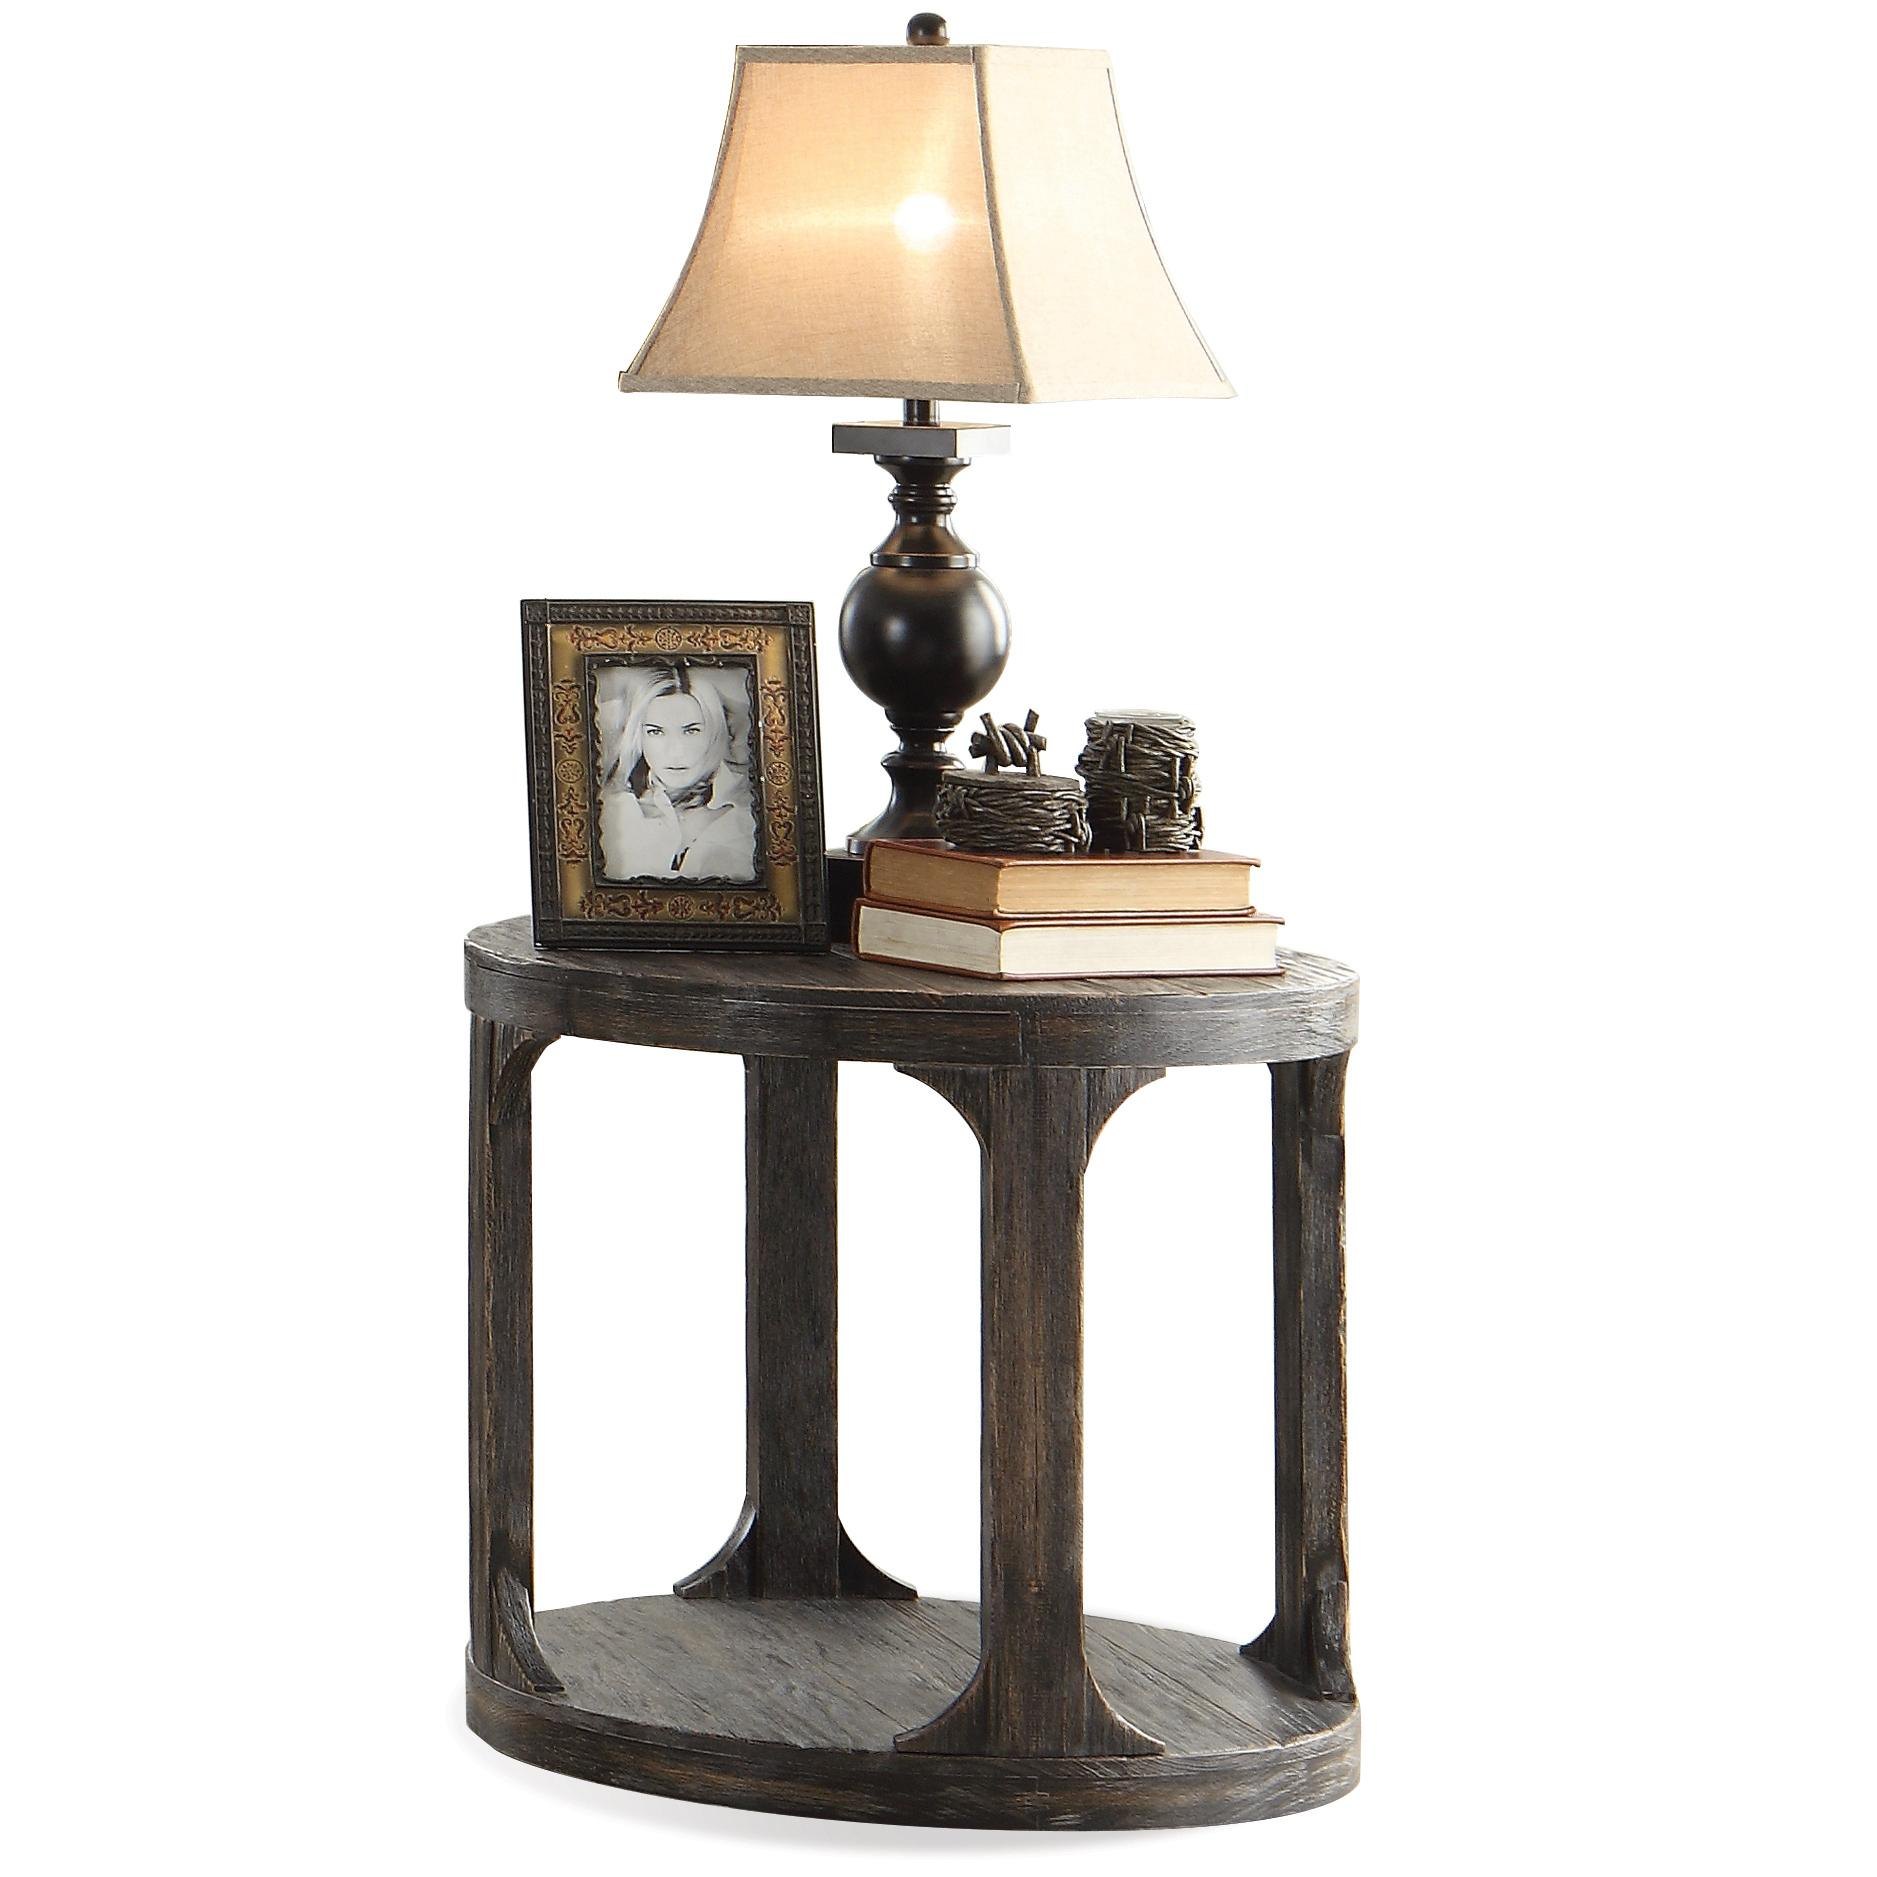 Riverside Furniture Bellagio Round End Table              - Item Number: 11808